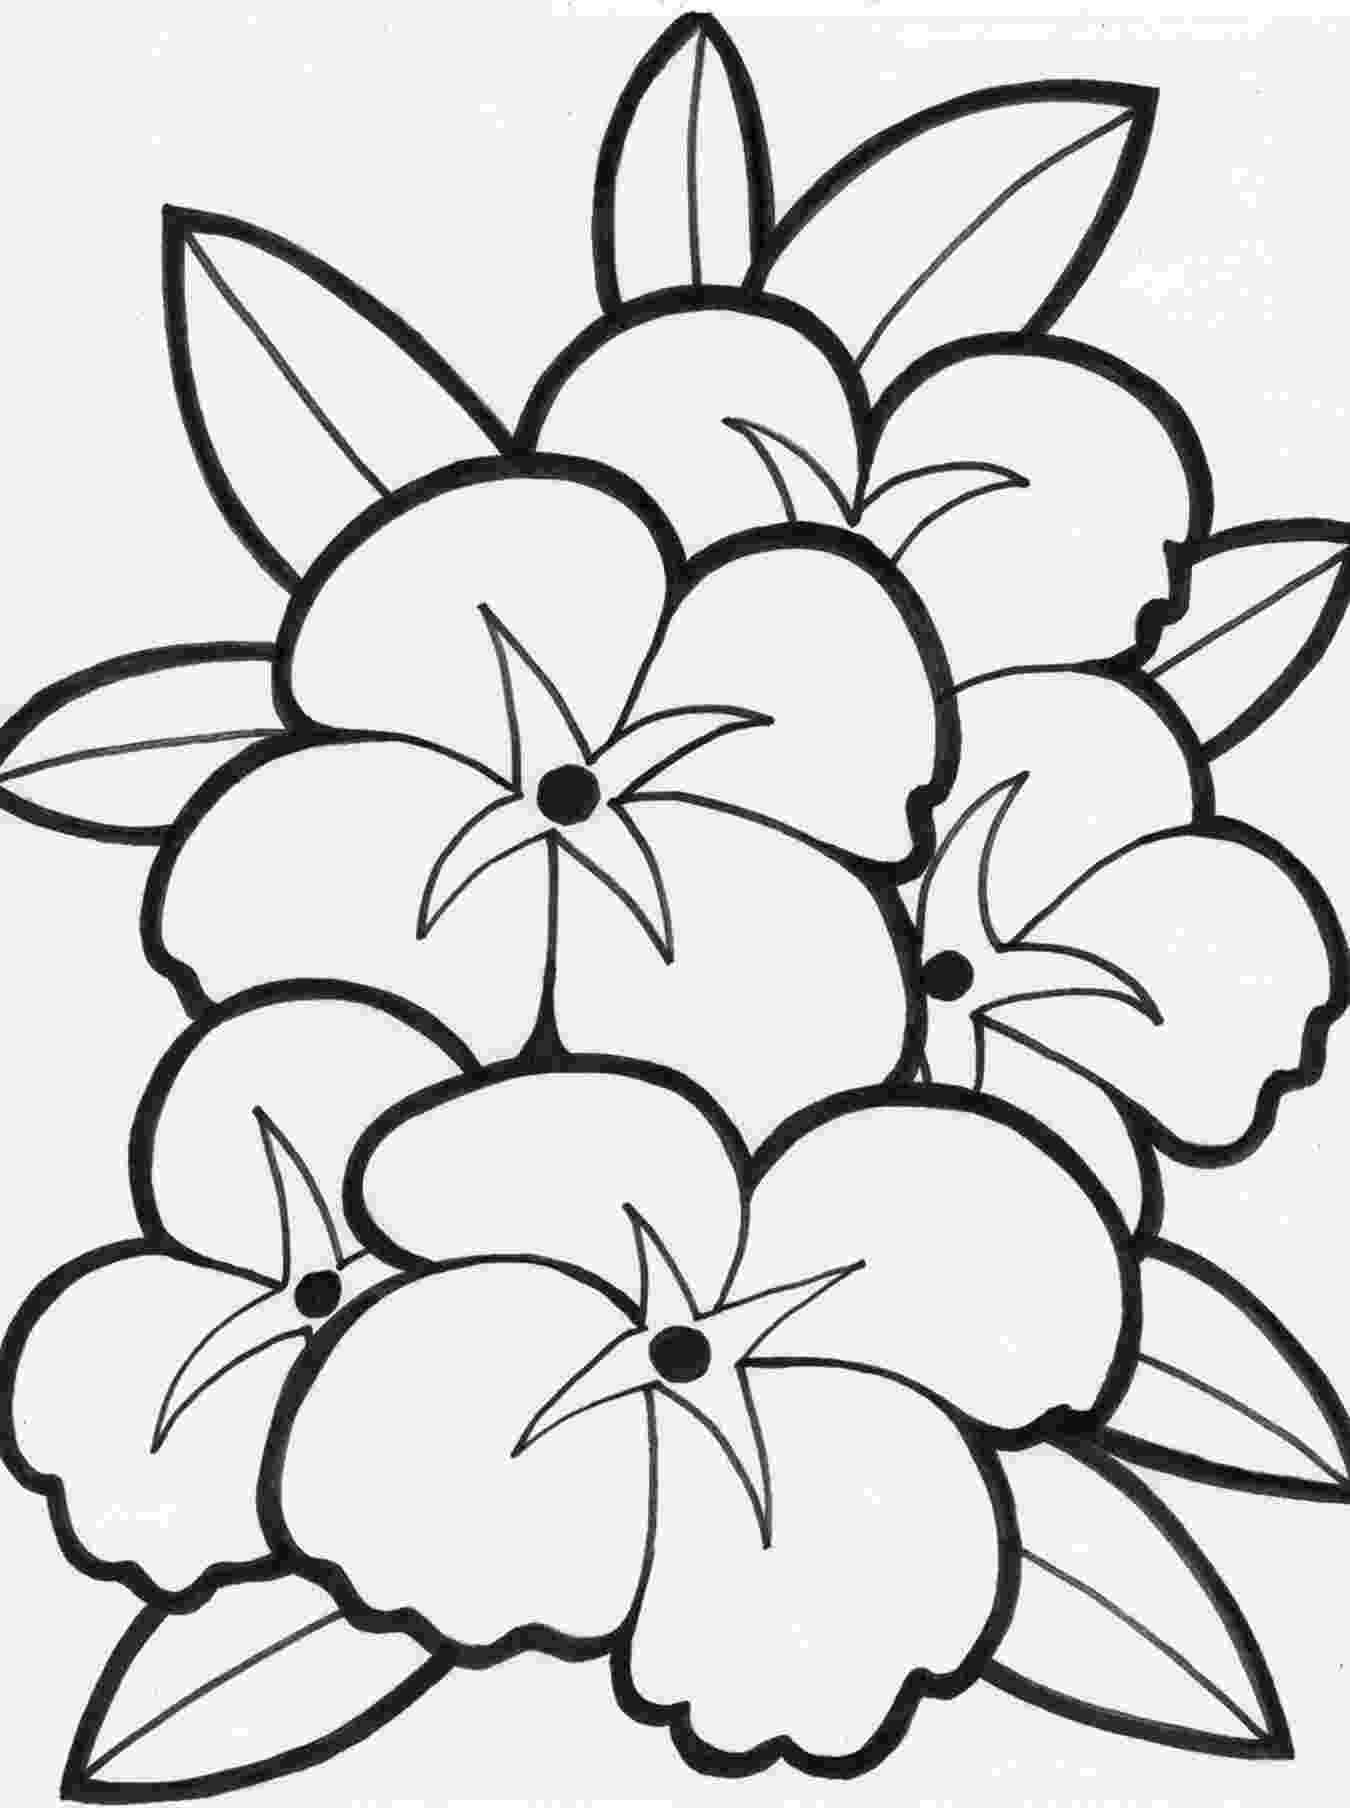 flower coloring sheets for kids free printable flower coloring pages for kids best sheets flower kids for coloring